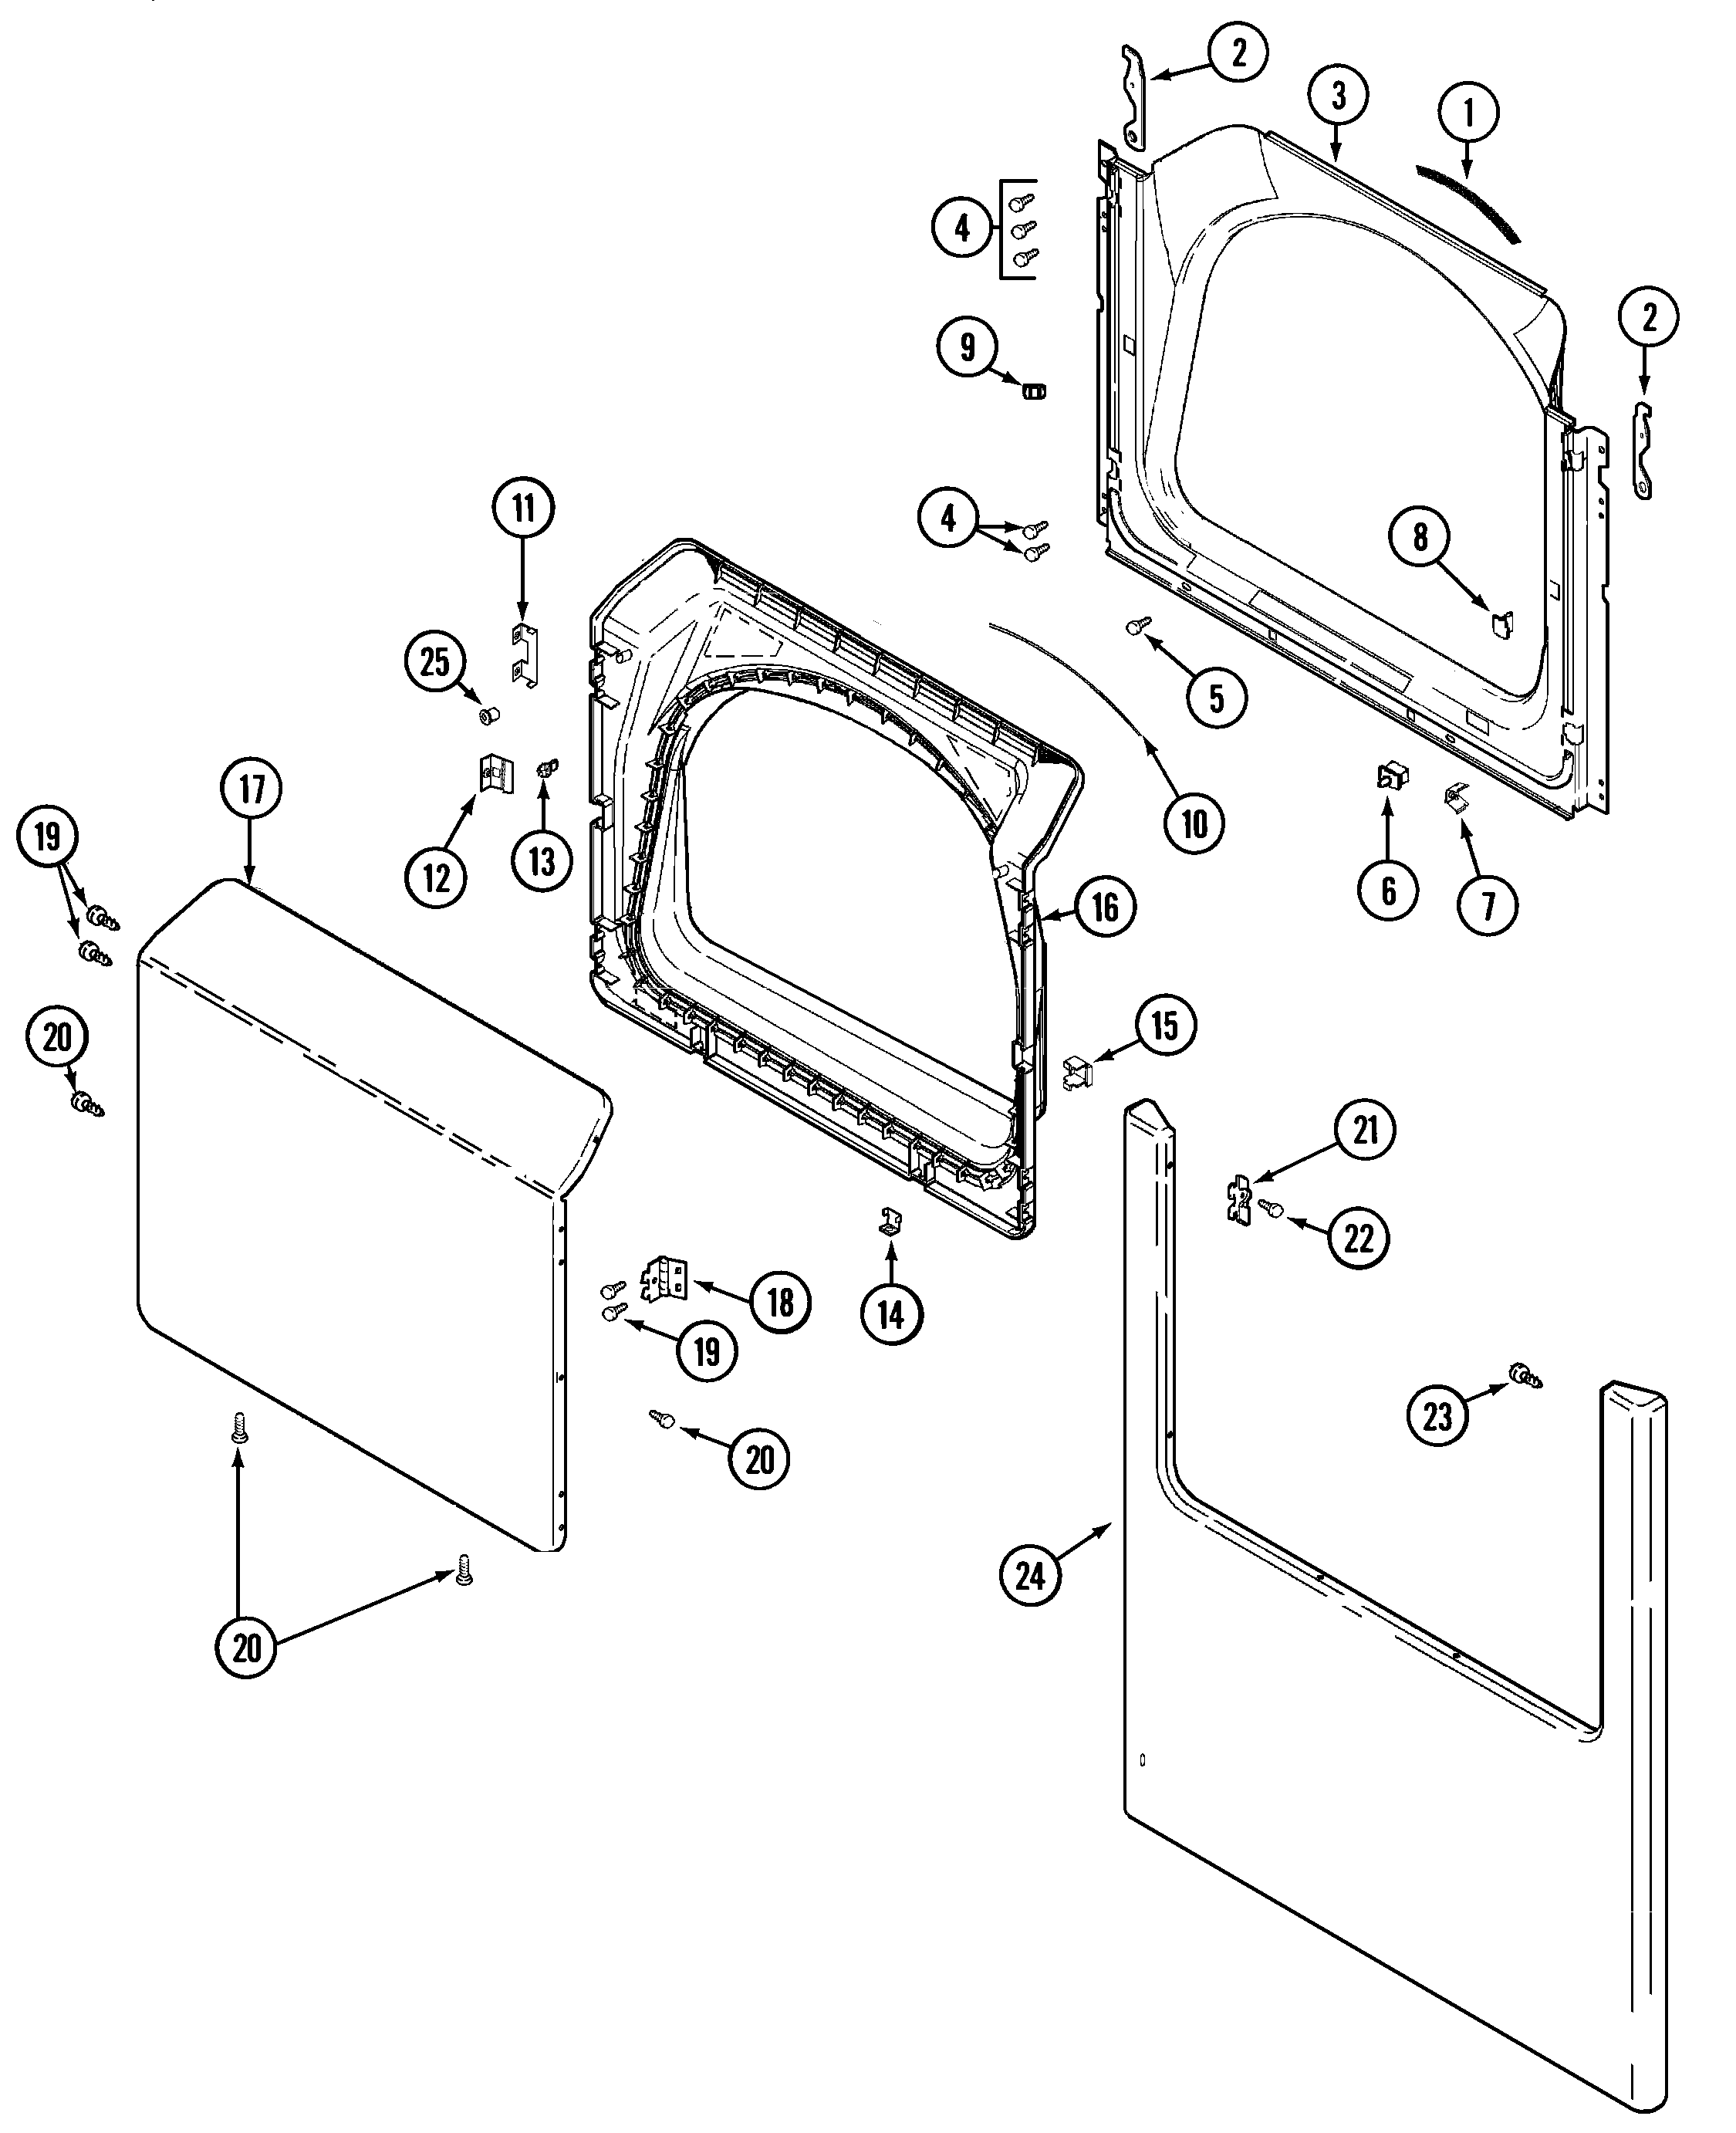 looking for maytag model mdg5500awq dryer repair replacement parts cabinet diagram and parts list for maytag dryerparts model [ 2250 x 2764 Pixel ]